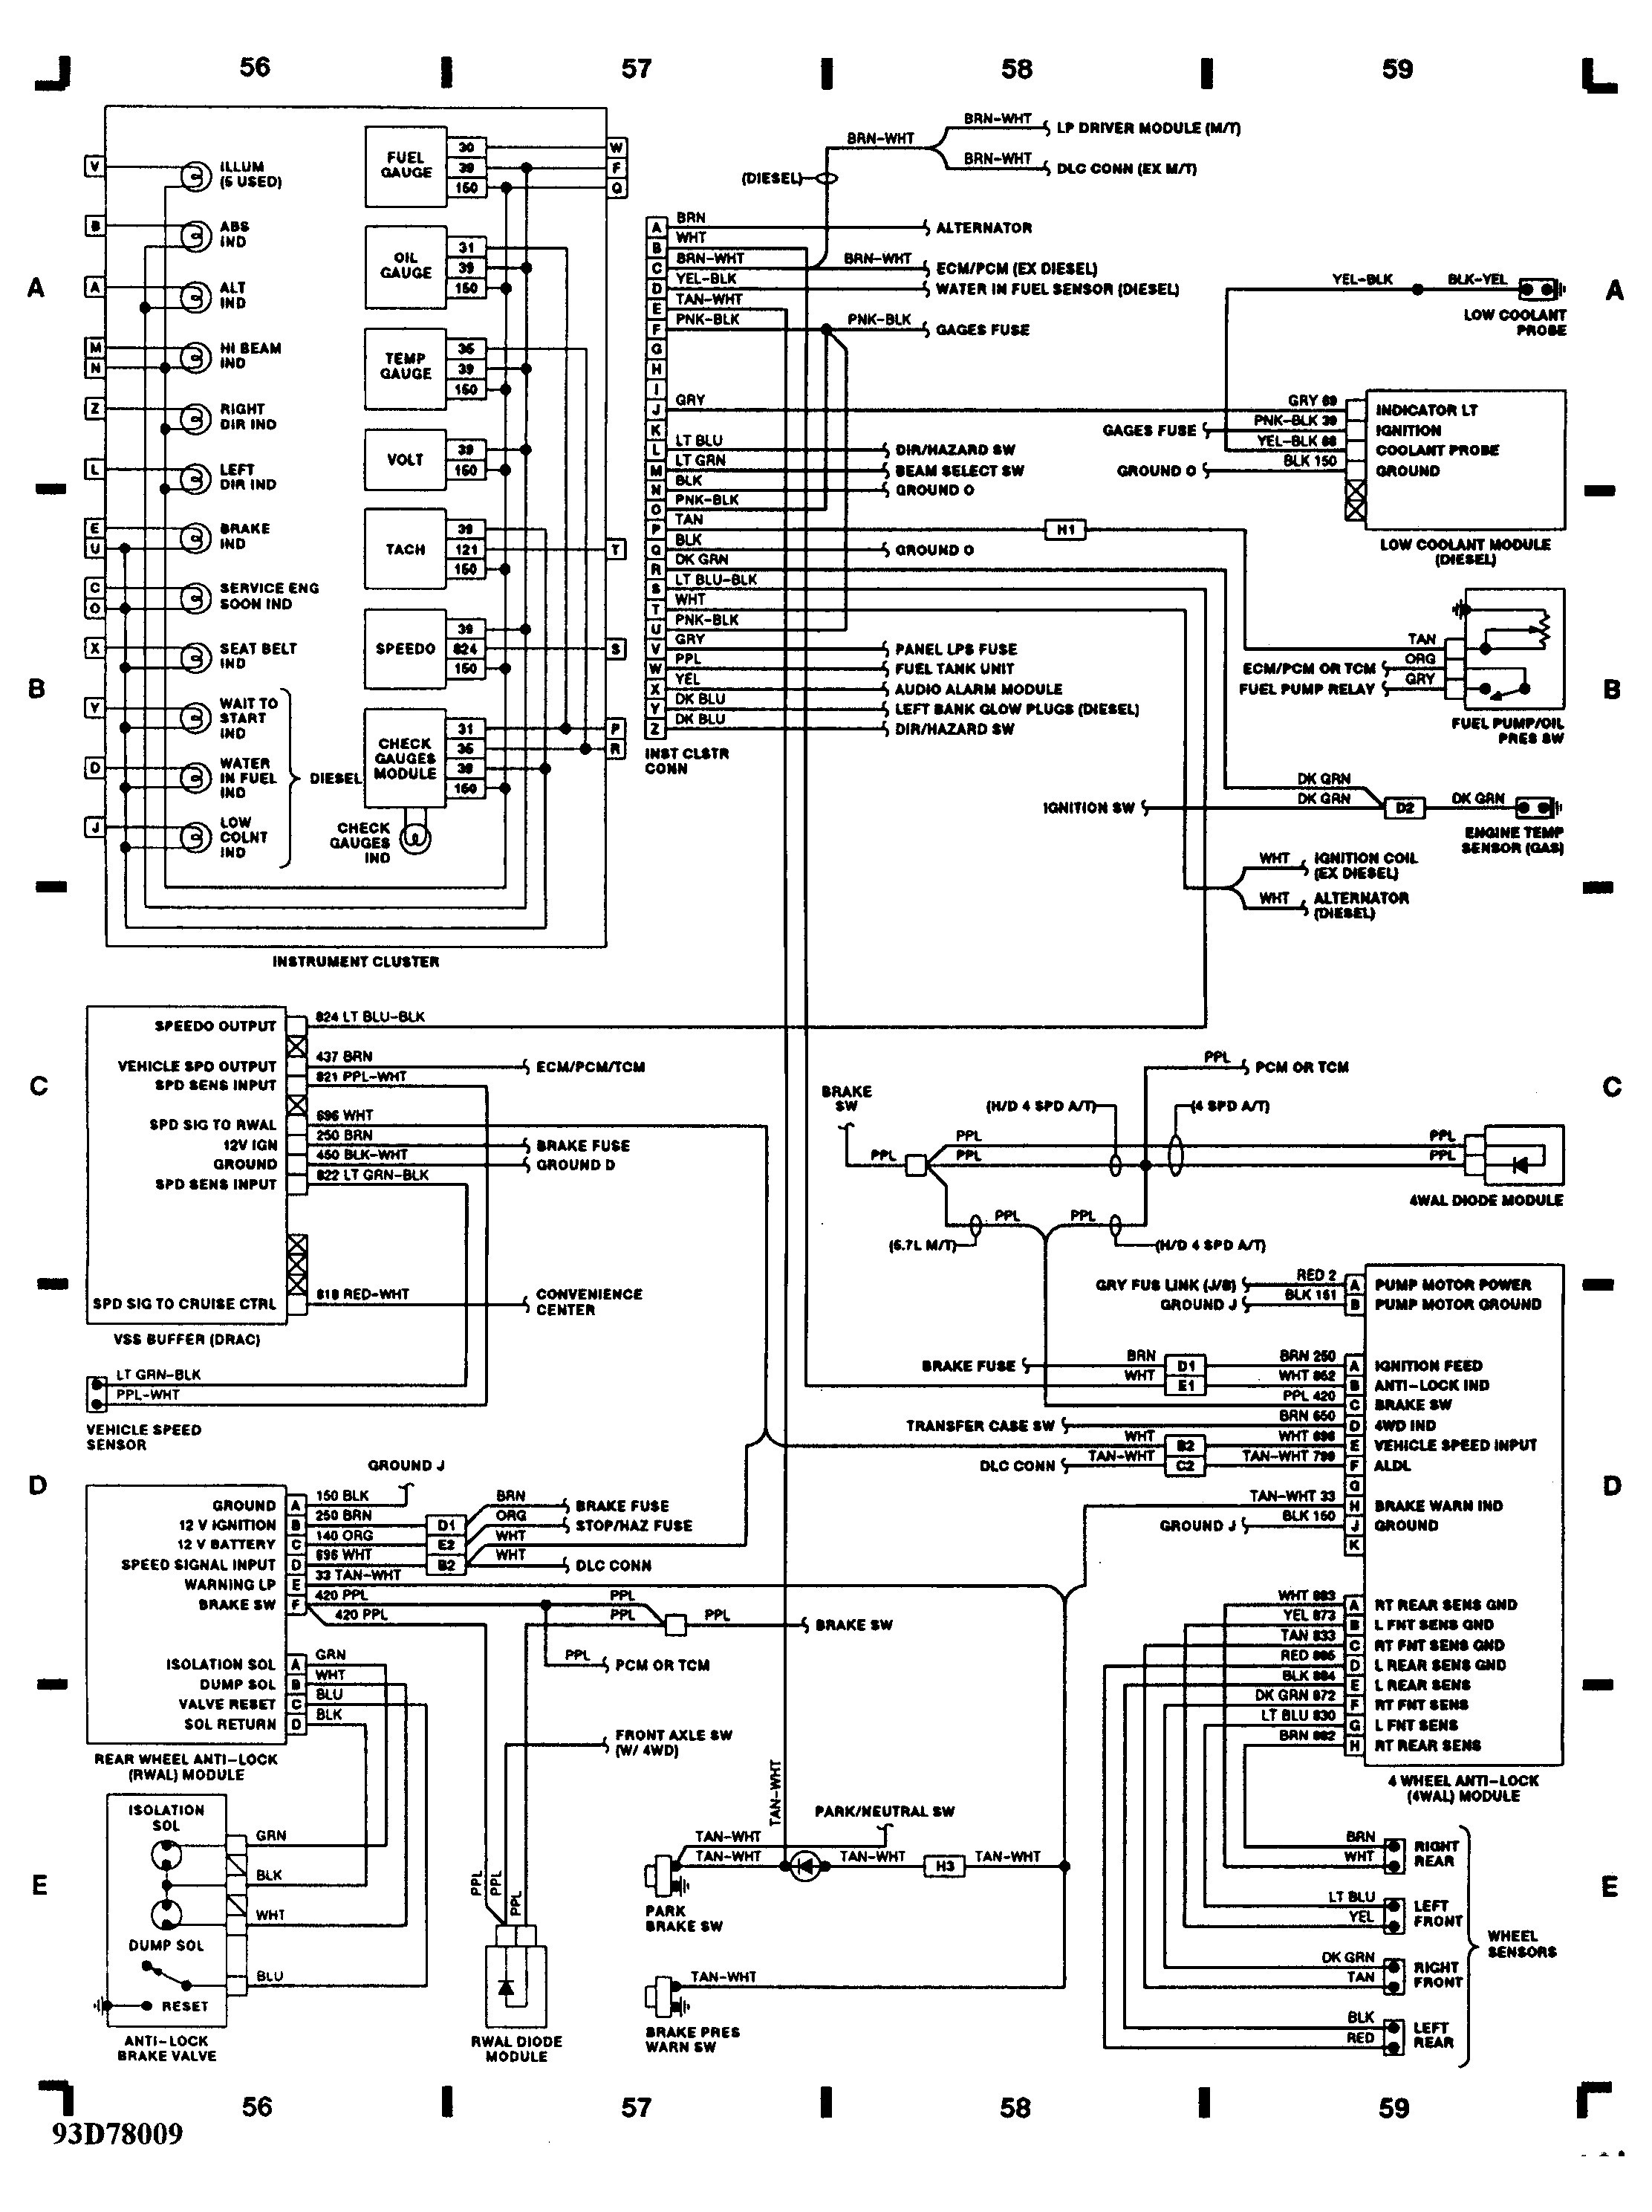 1999 Chevy Tahoe Engine Diagram | My Wiring DIagram